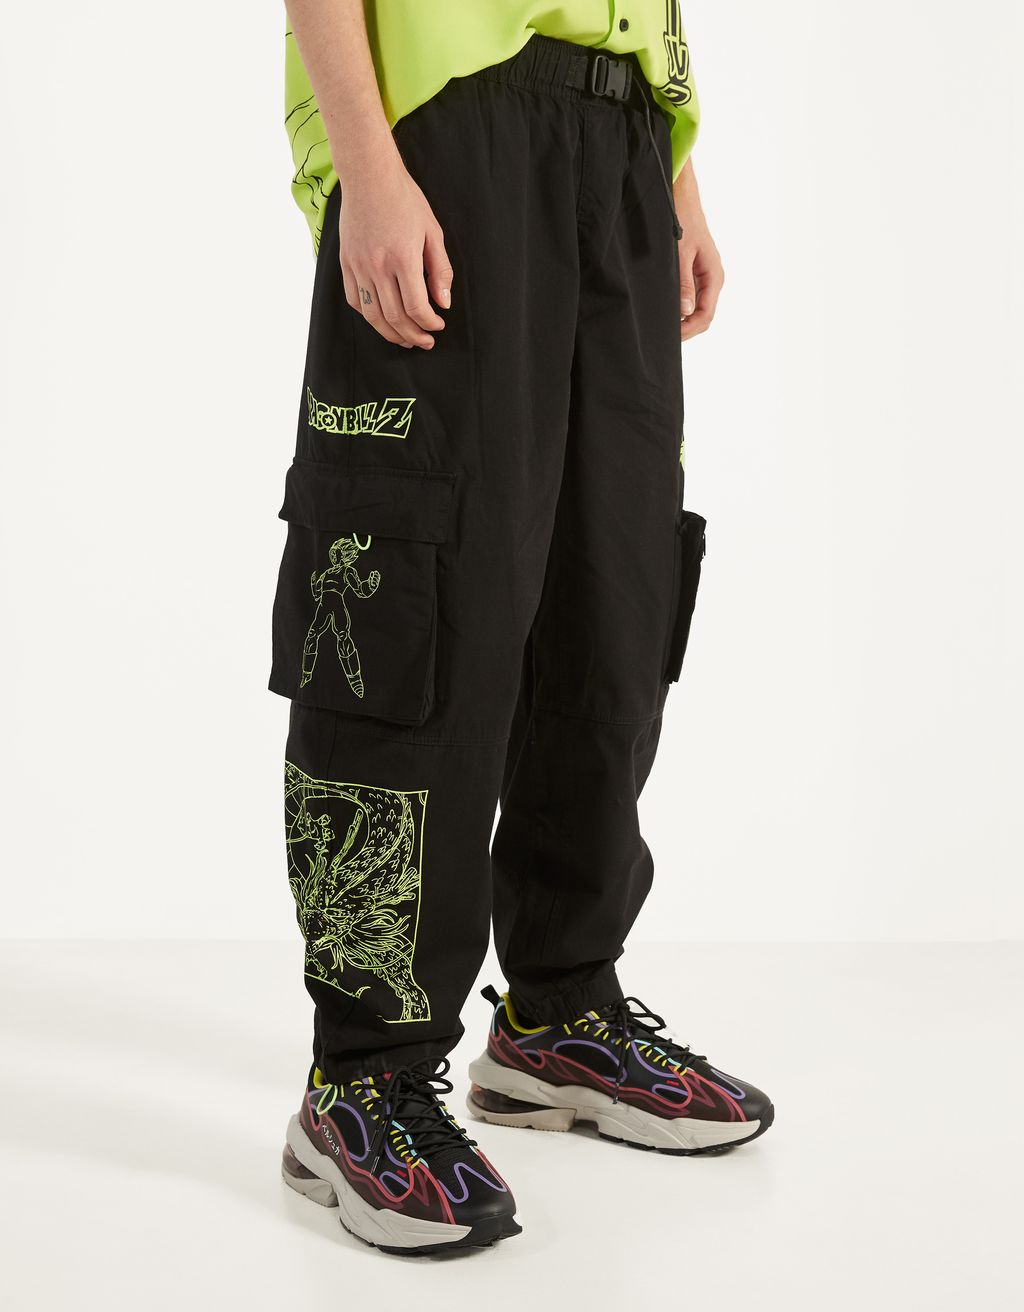 Pantalon cargo Dragon Ball Z x Bershka